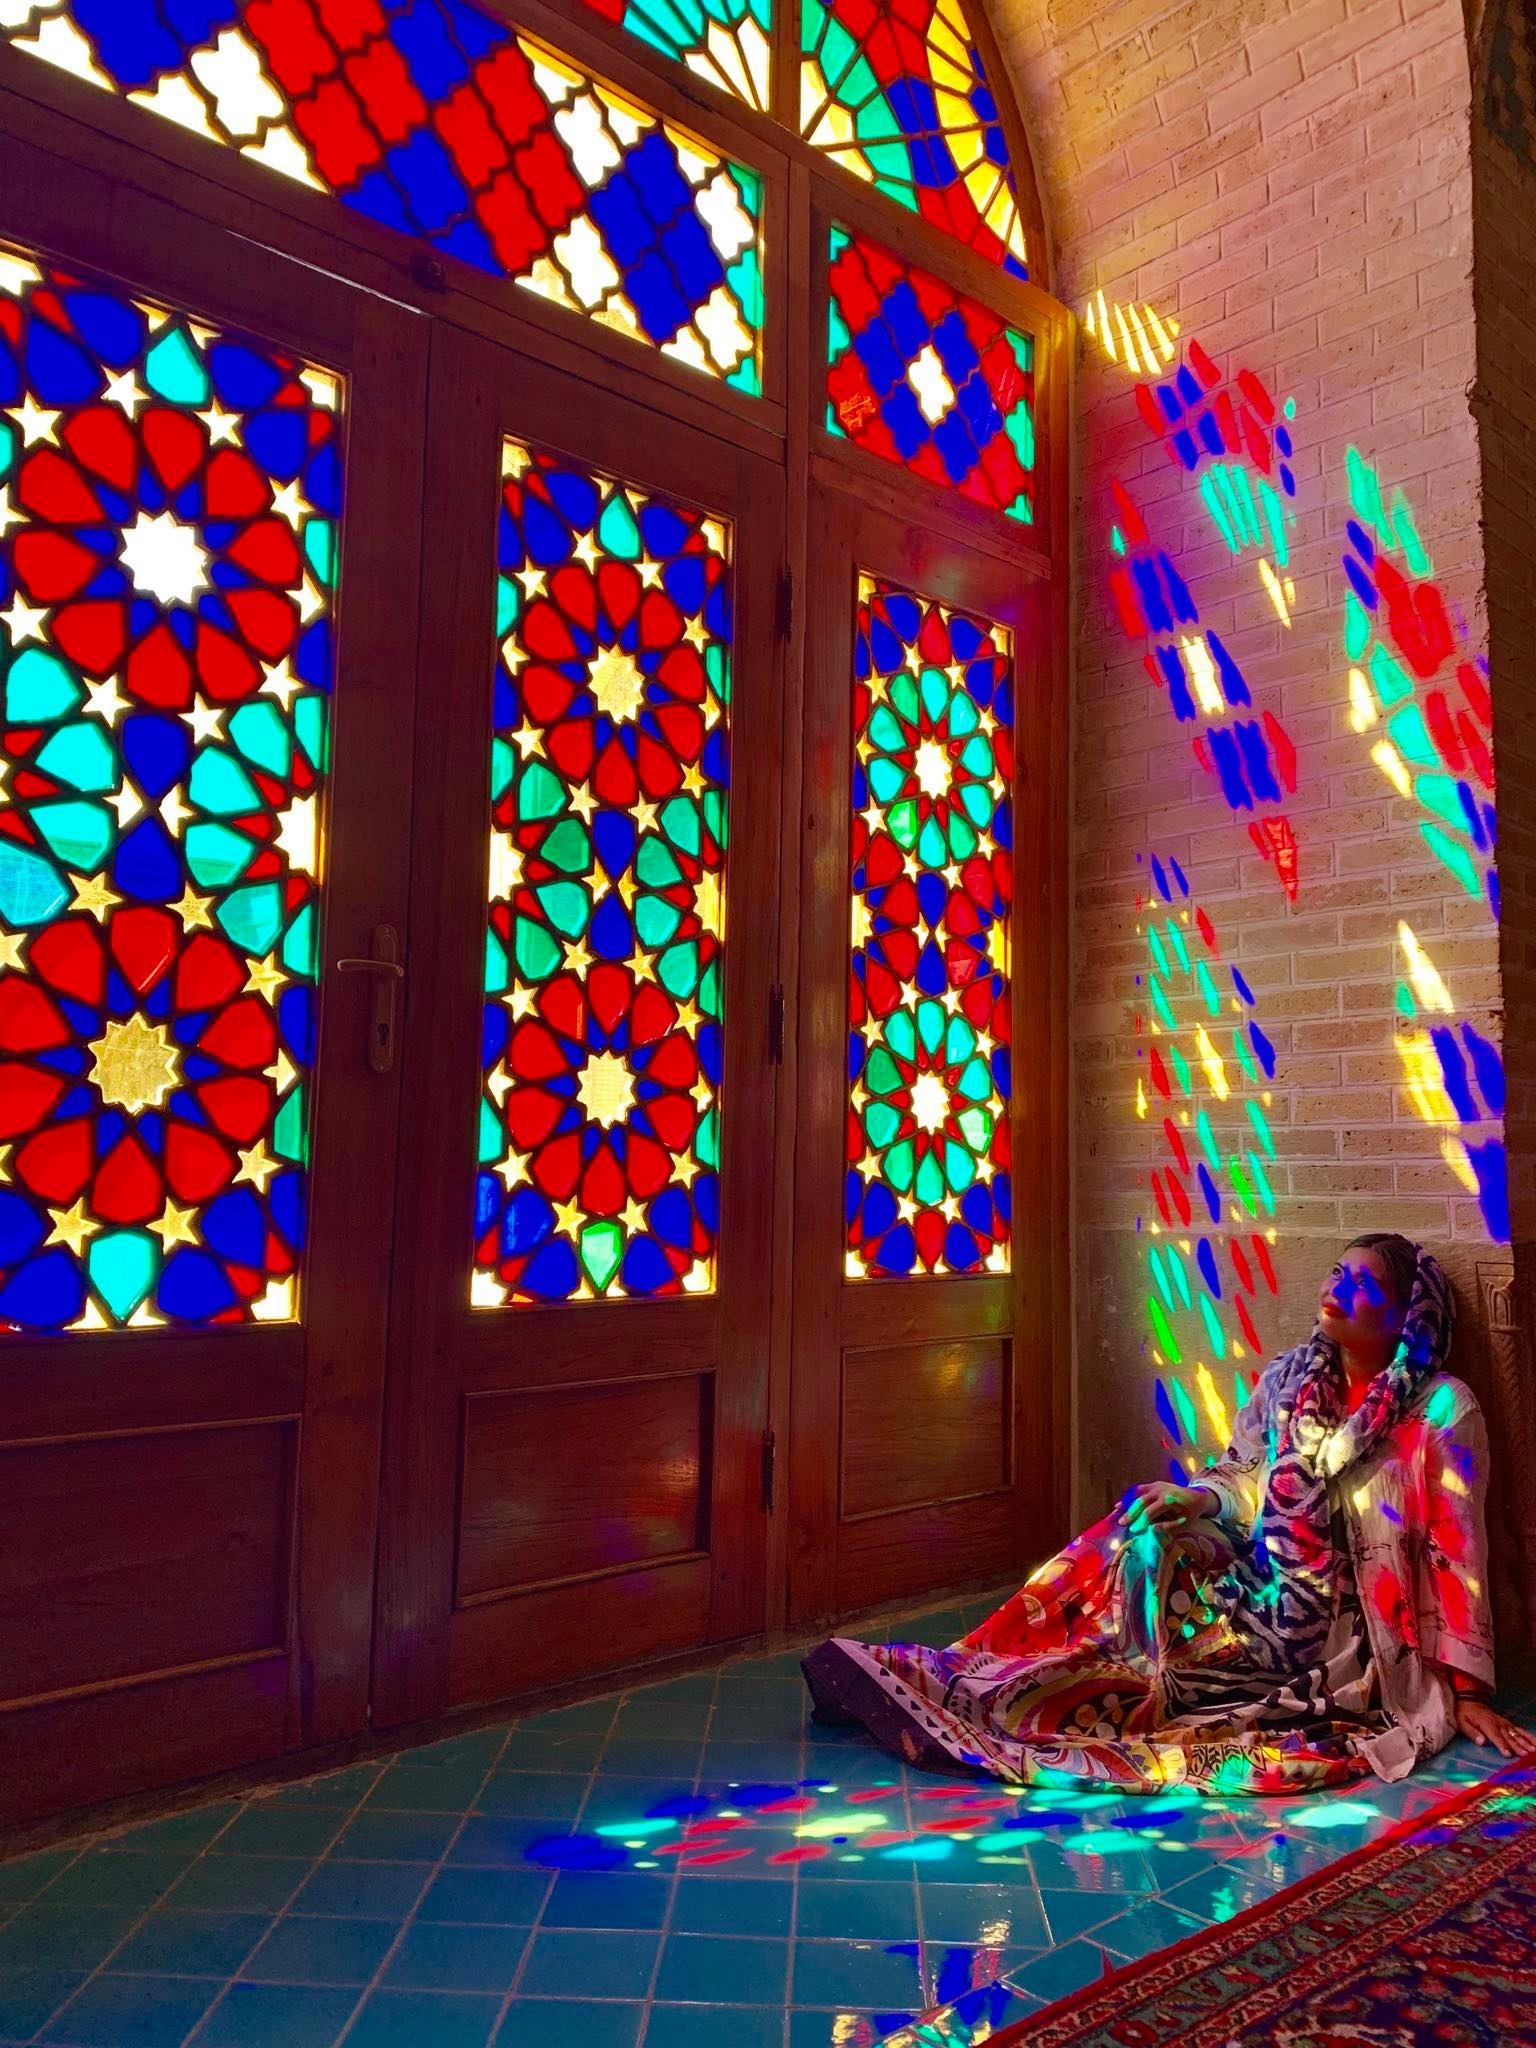 Kach Solo Travels in 2019 Full day tour of Shiraz49.jpg